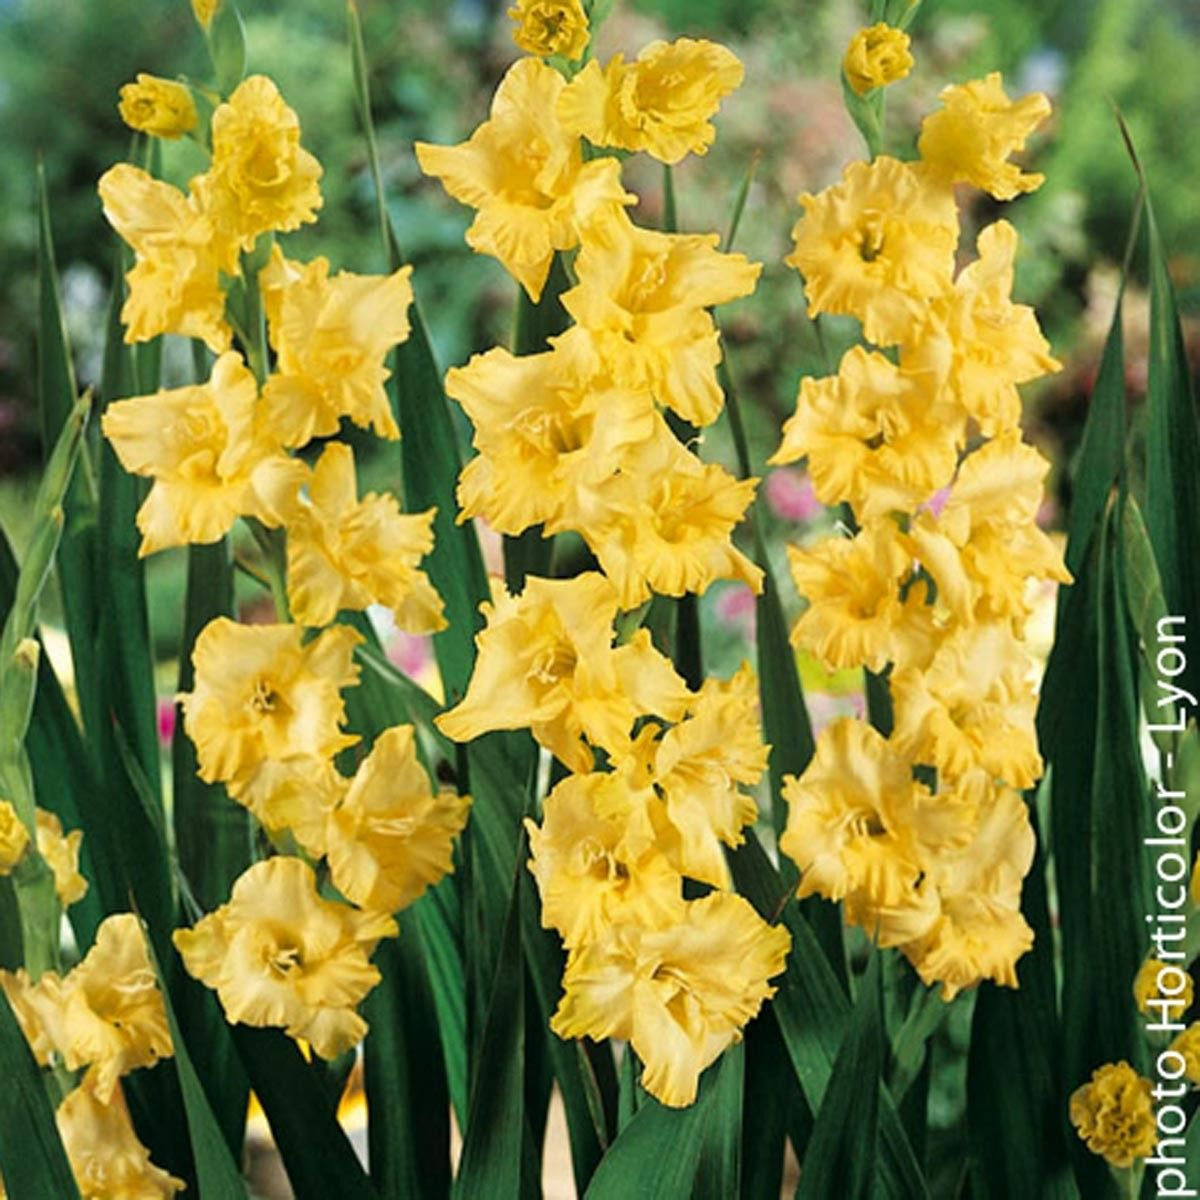 Glaïeul jaune d'or brillant - Gladiolus Morning Gold